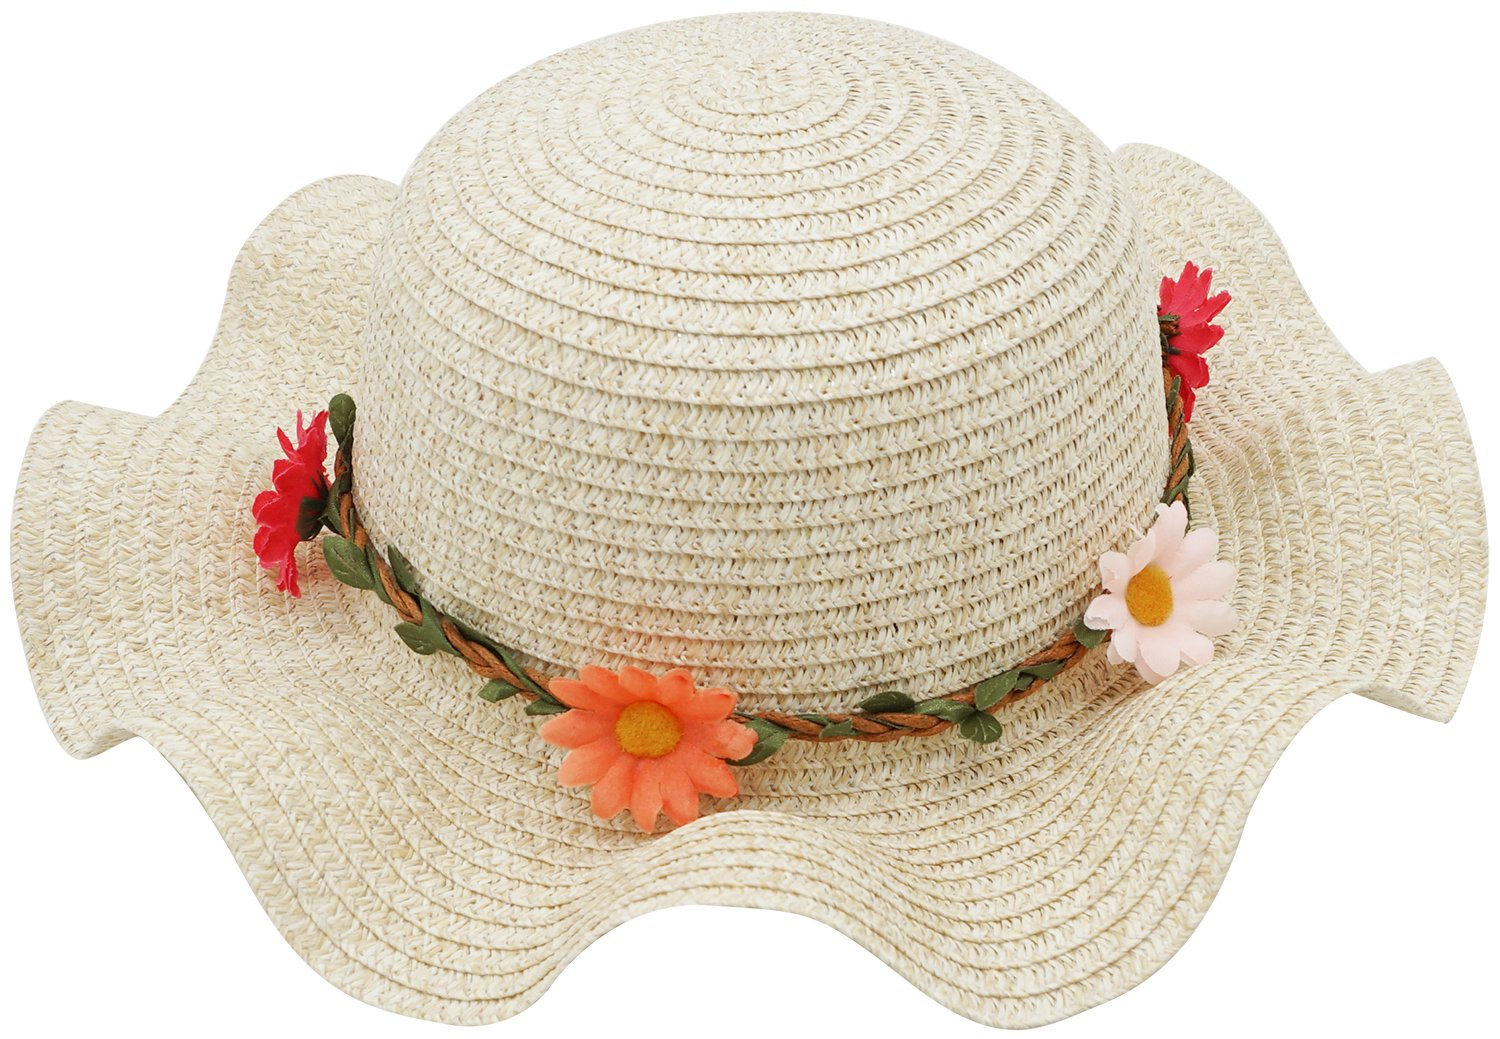 Bienvenu Sun Straw Hat Kids Girls Large Wide Brim Travel Beach Beanie Cap,Beige by Bienvenu (Image #2)